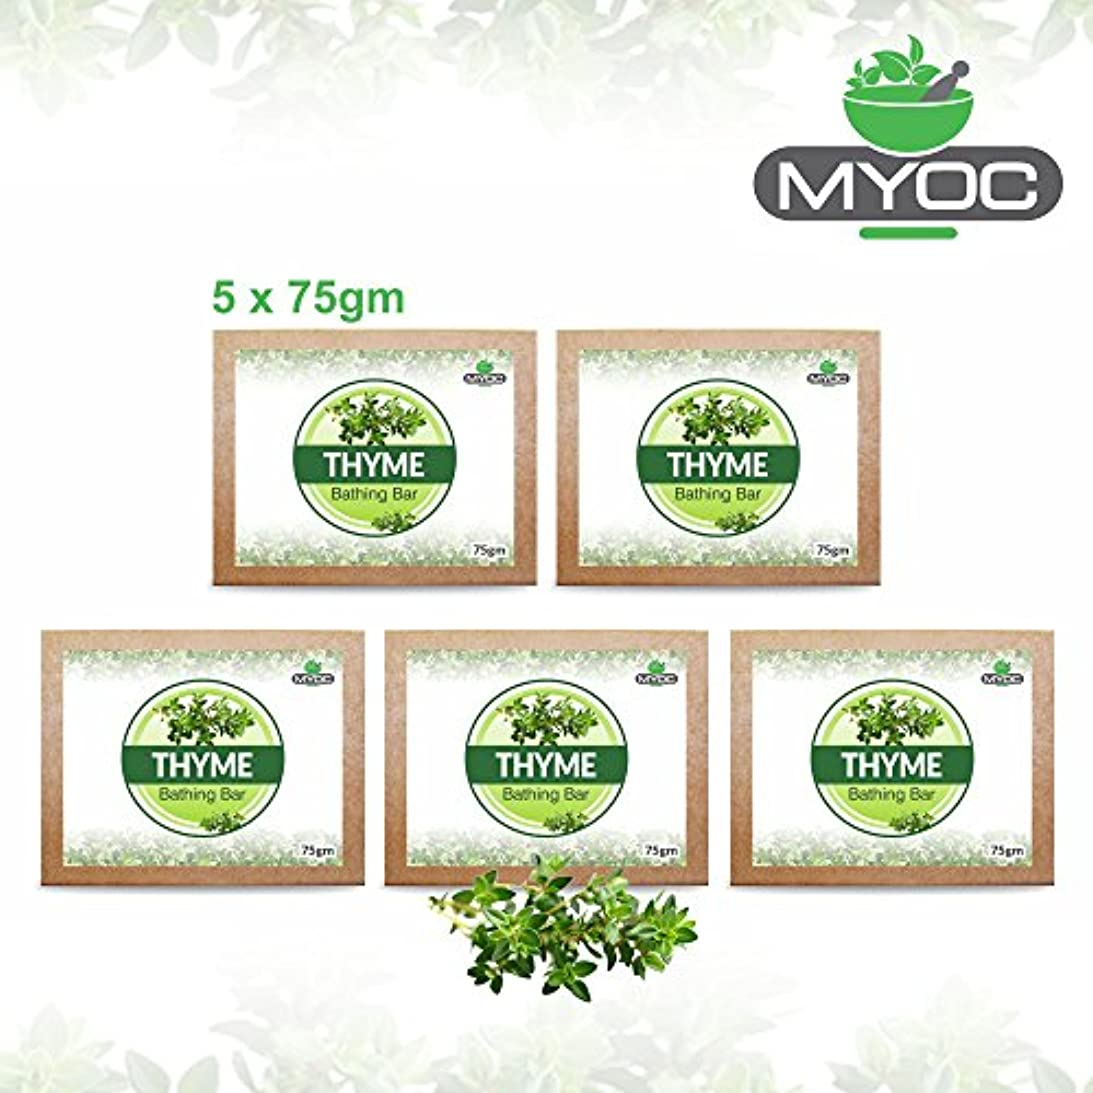 シリアルあらゆる種類の子豚Thyme Oil And Vitamin E Soap For bad odour, acne free and athletes foot 75g x 5 Pack